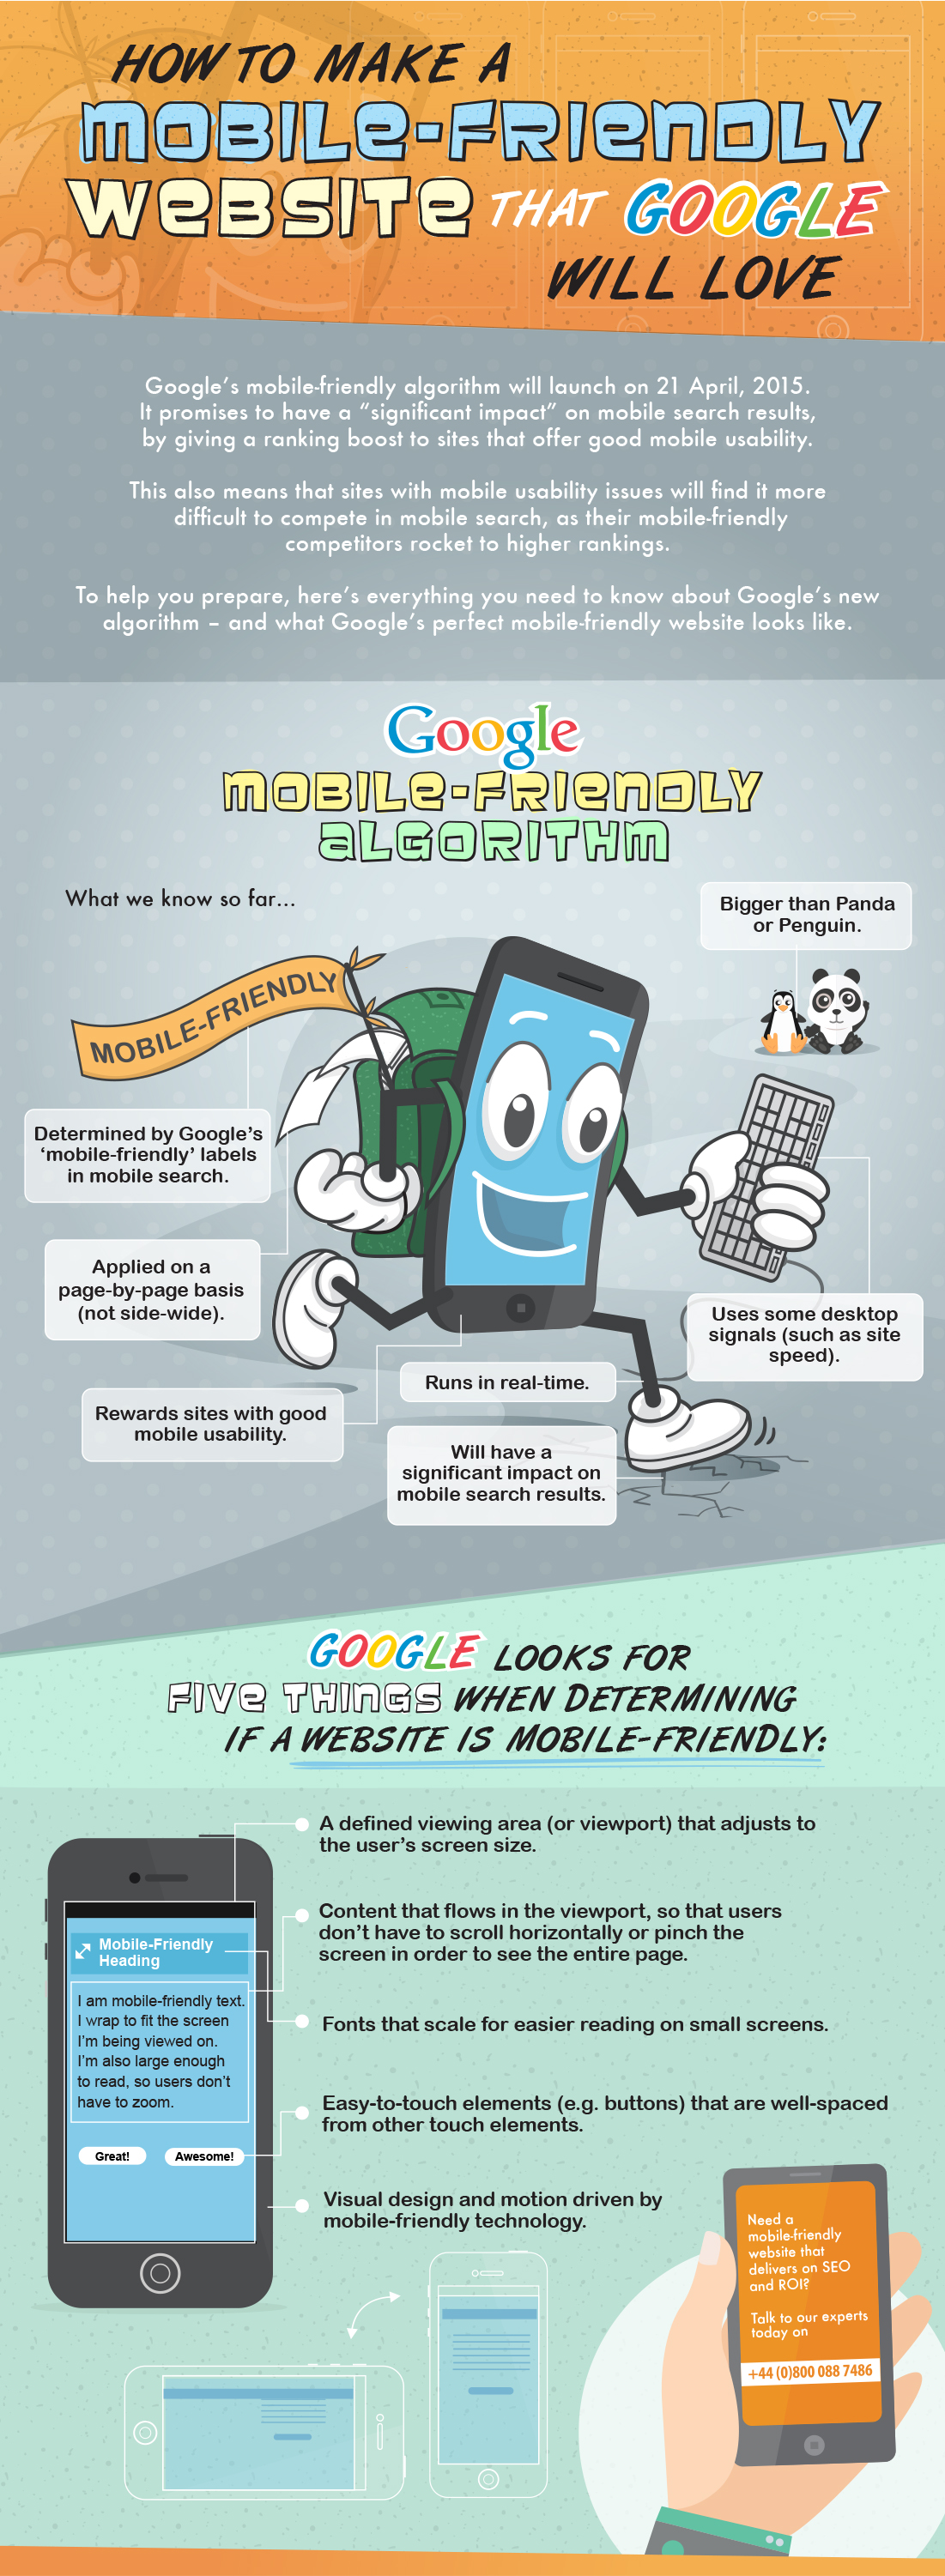 How to make a mobile-friendly web site that Google will love